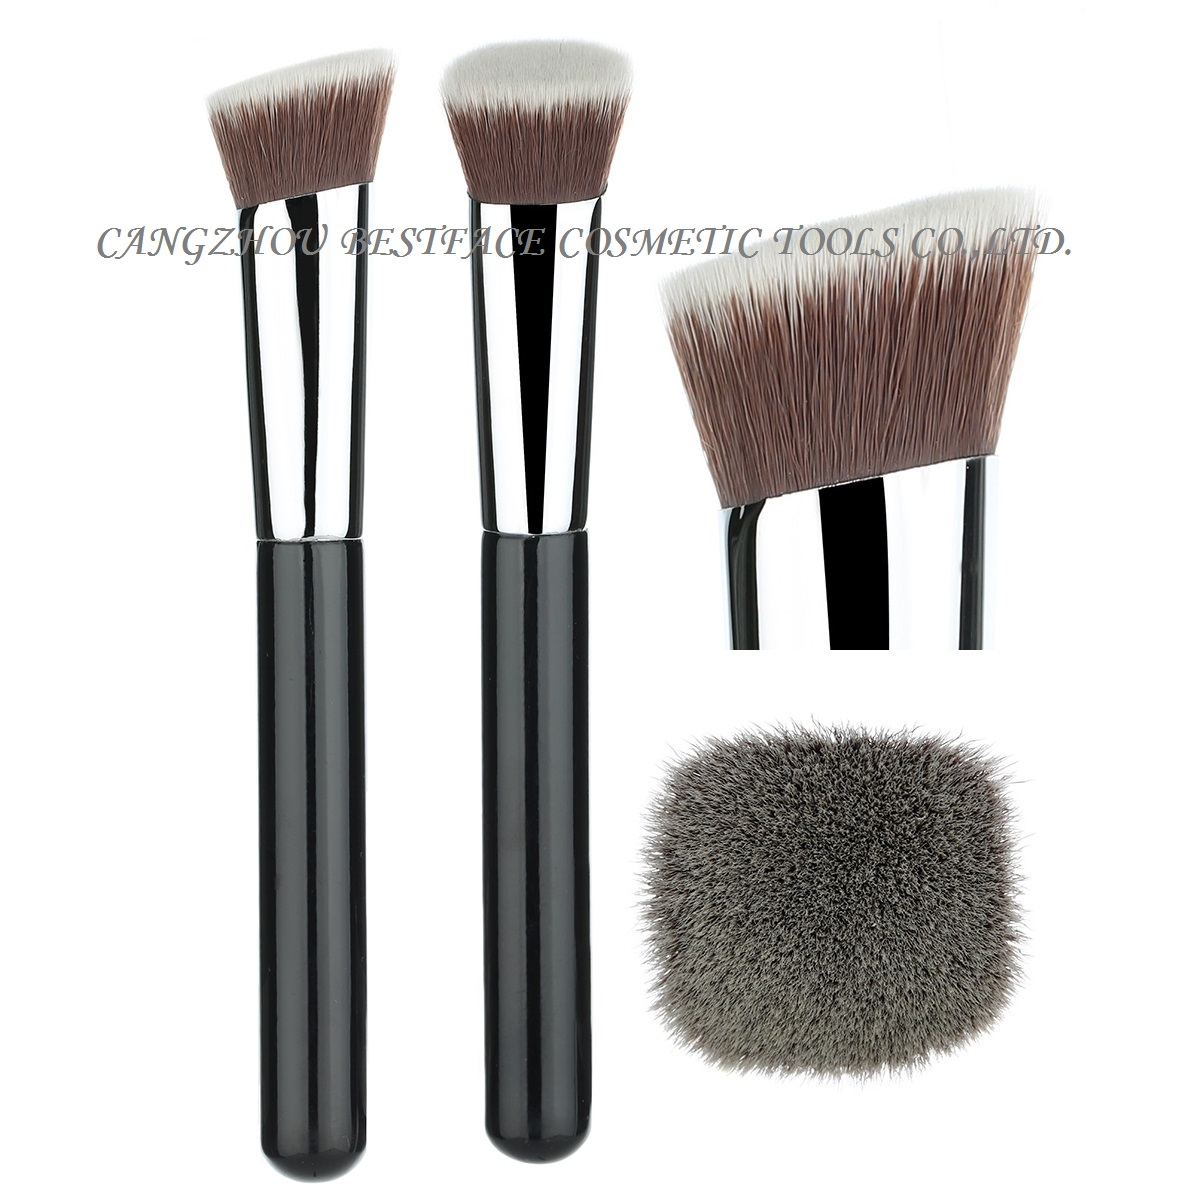 Cosmetic Brushes factory in China